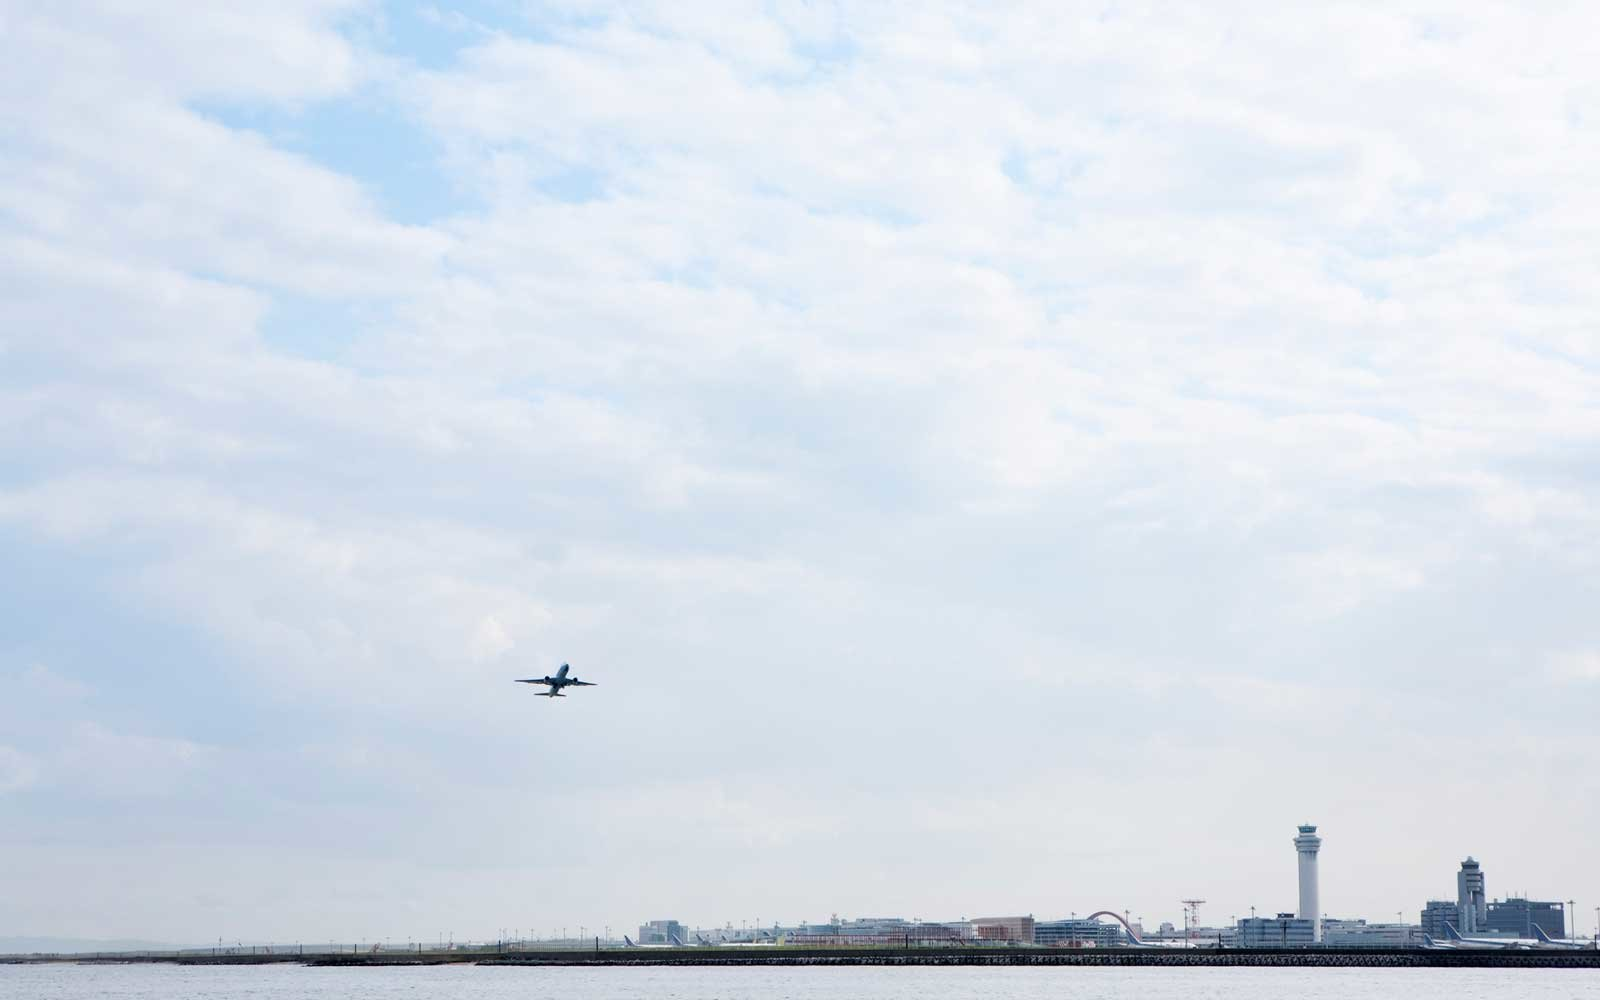 An air plane taking off from  airport on the seashore.